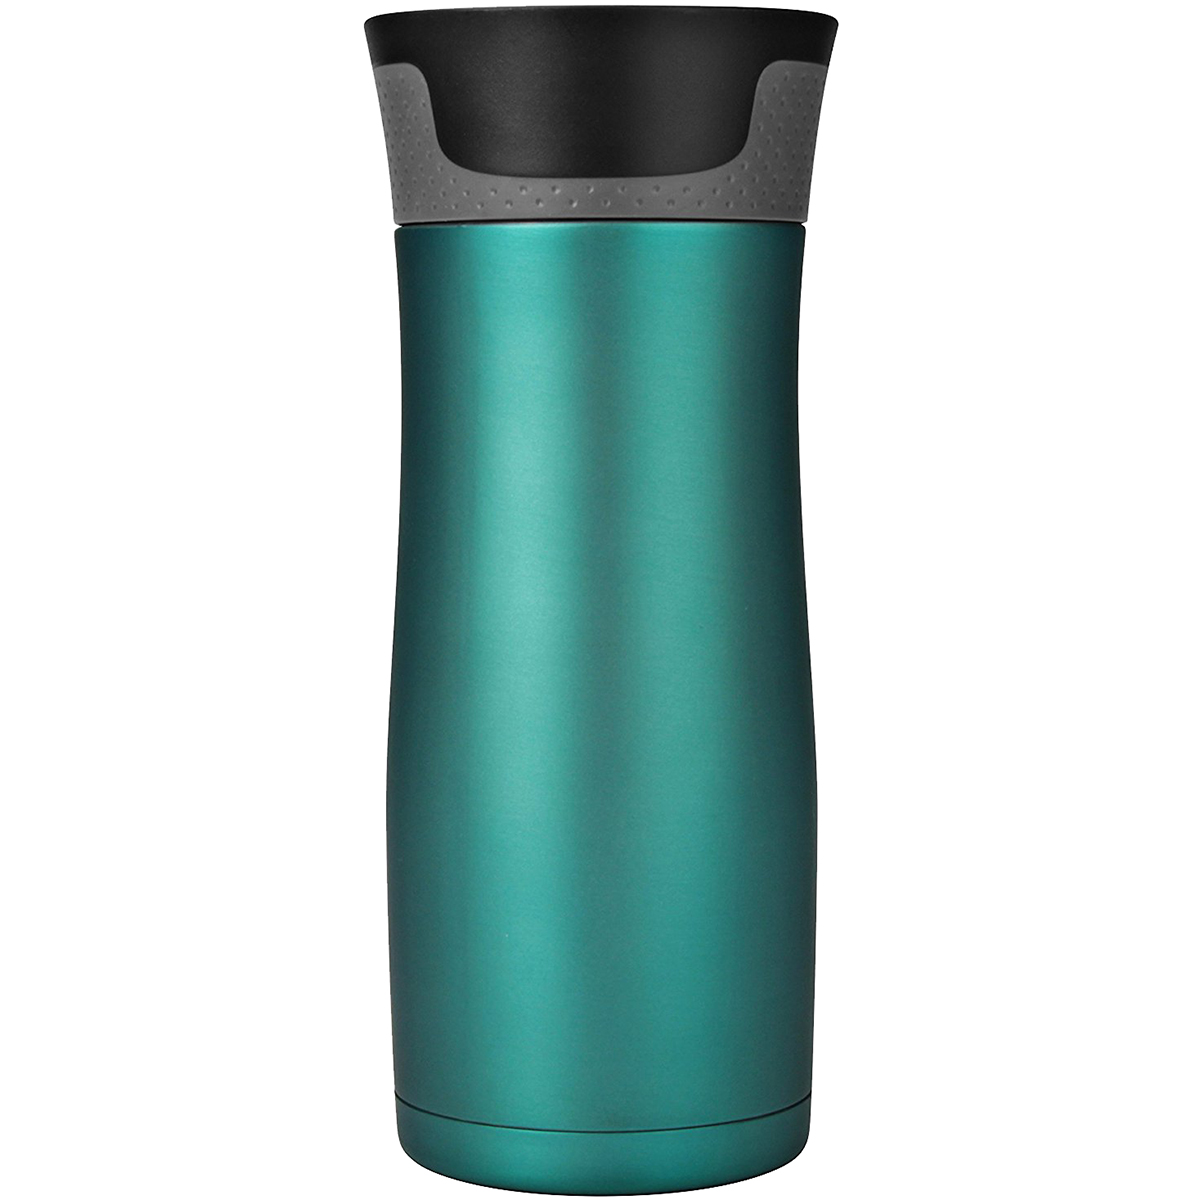 Contigo-16-oz-West-Loop-2-0-AutoSeal-Insulated-Stainless-Steel-Travel-Mug thumbnail 32